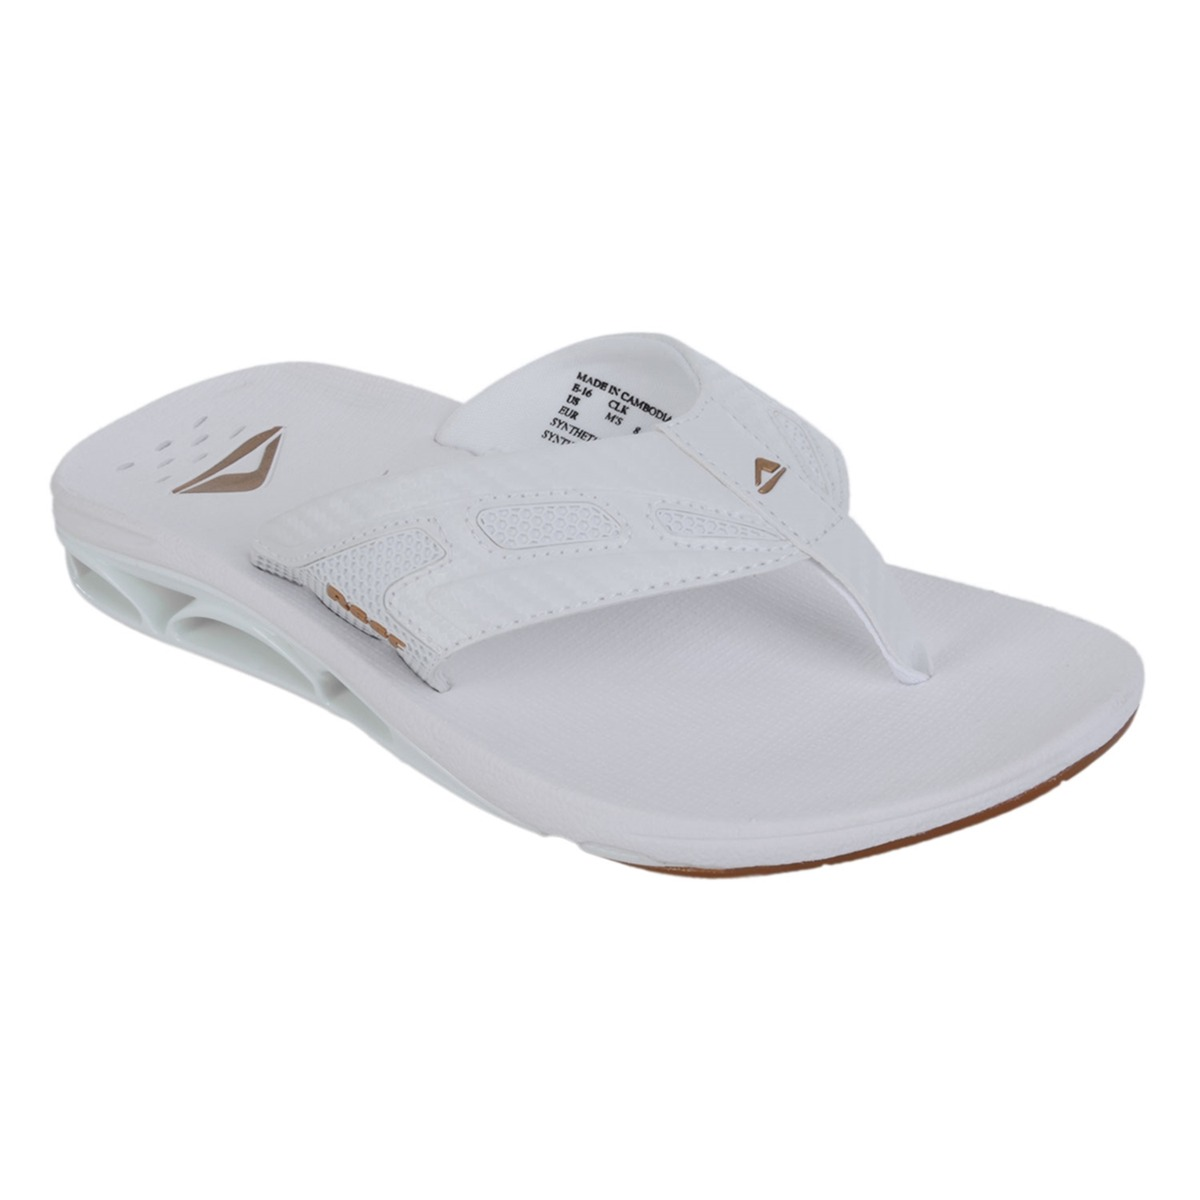 29bcc9a1a9 Chinelo Masculino Reef X-s-1 White Gold - R  159